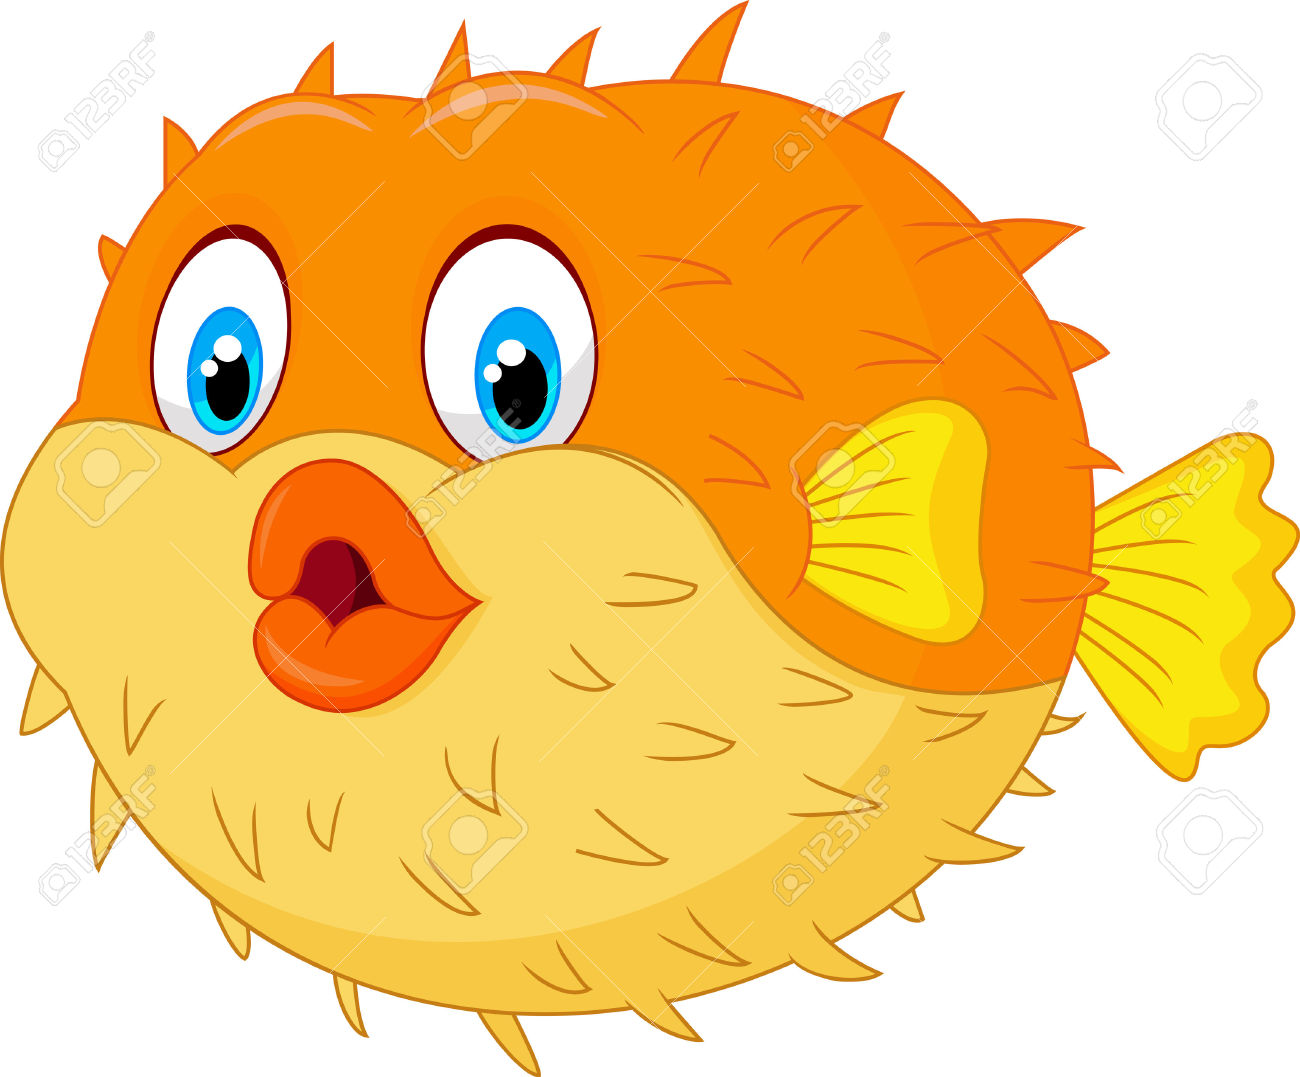 Pufferfish clipart #6, Download drawings